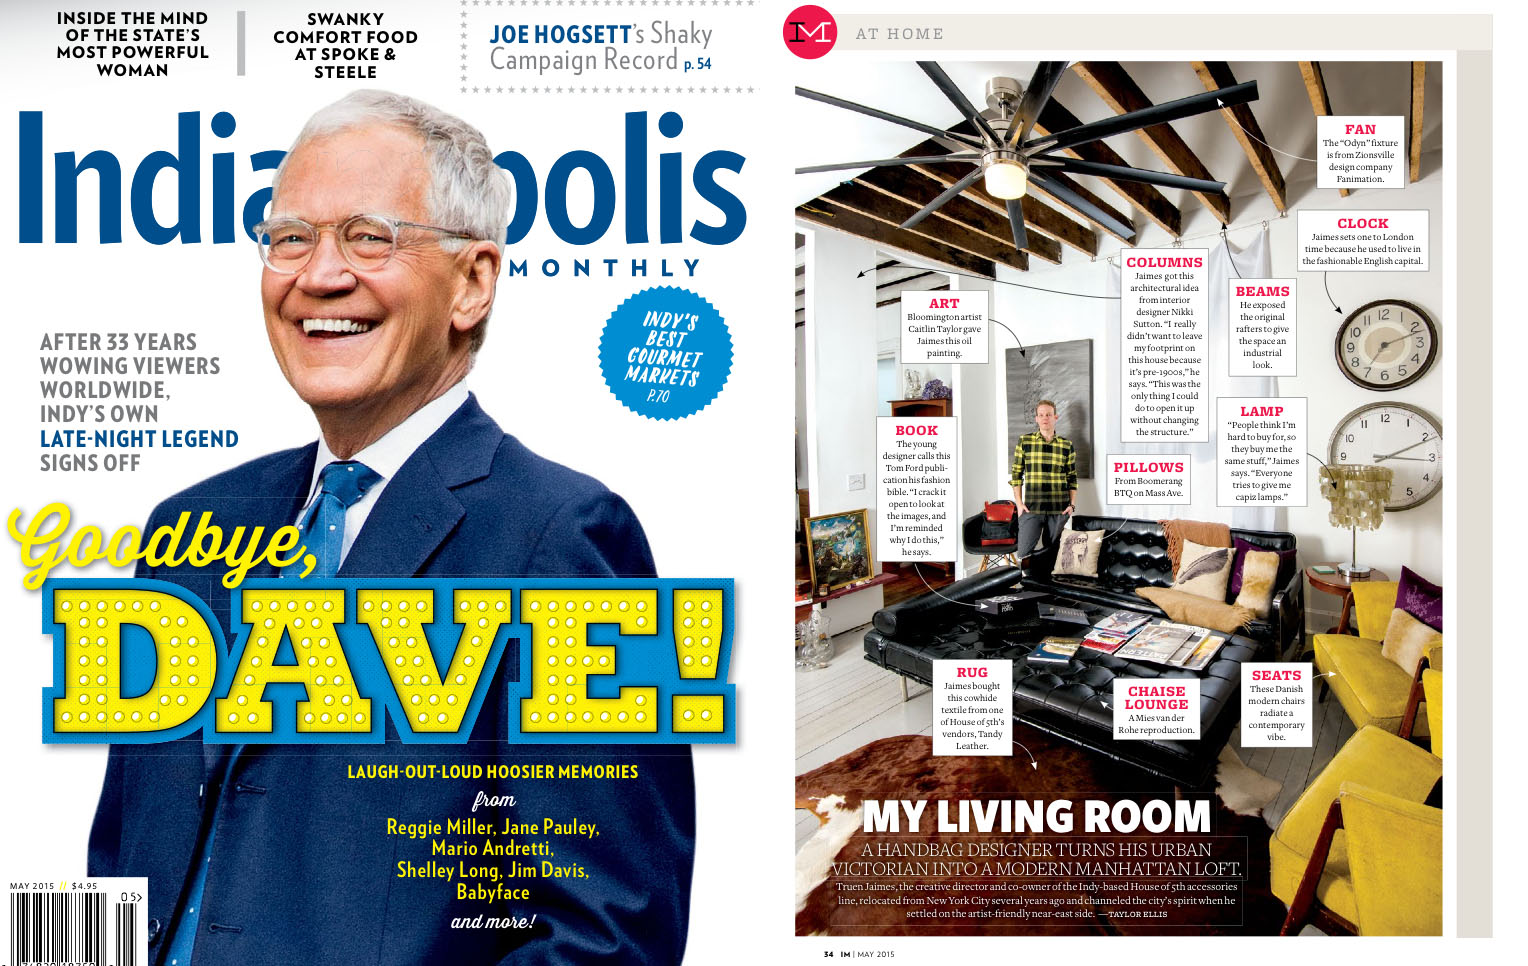 The new P.S. F*U backpack & Dexter Sidekick both makean appearance in the  Indianapolis Monthly feature of our Creative Director's modern Midwest home.